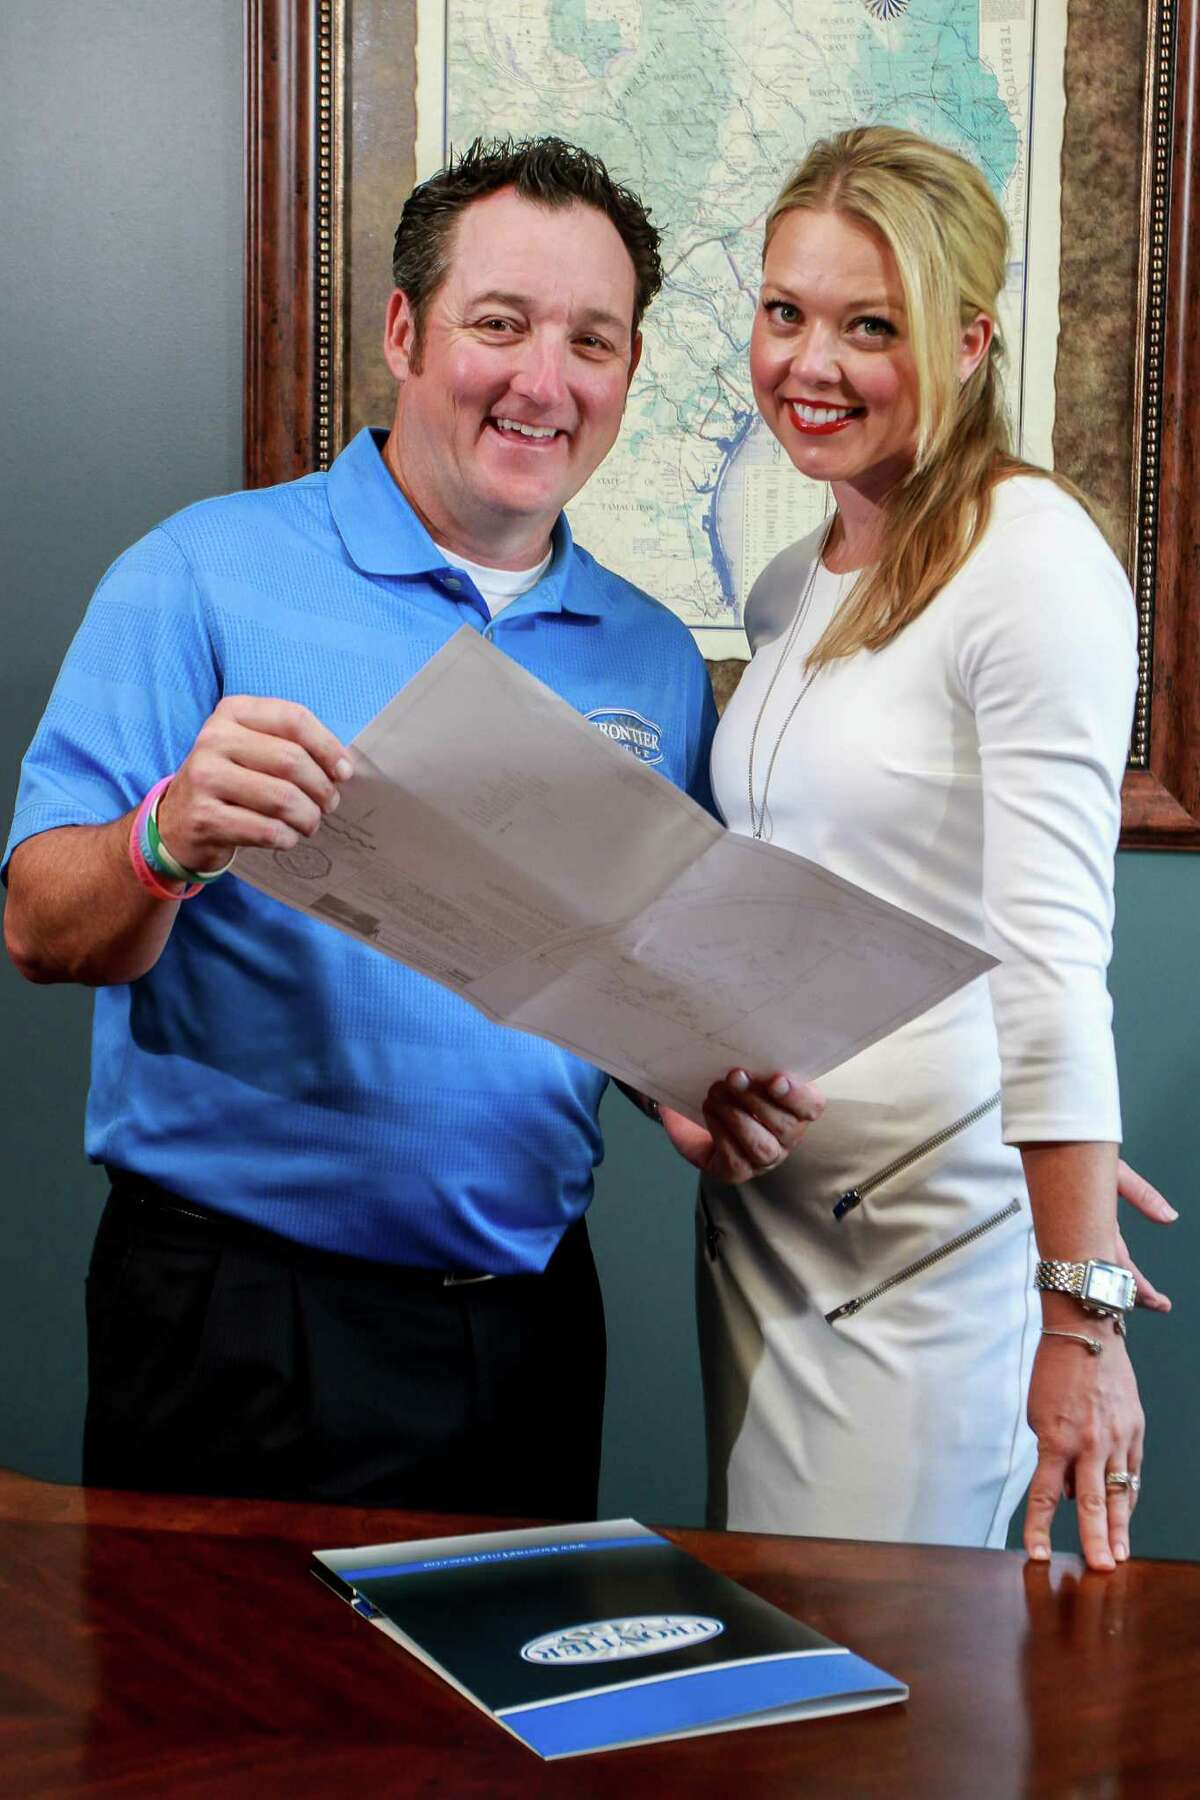 Doug Watson, president of Frontier Title, and Keri Burdette, v.p. of marketing and client relations, reviewing a file. (For the Chronicle/Gary Fountain, October 4, 2016)